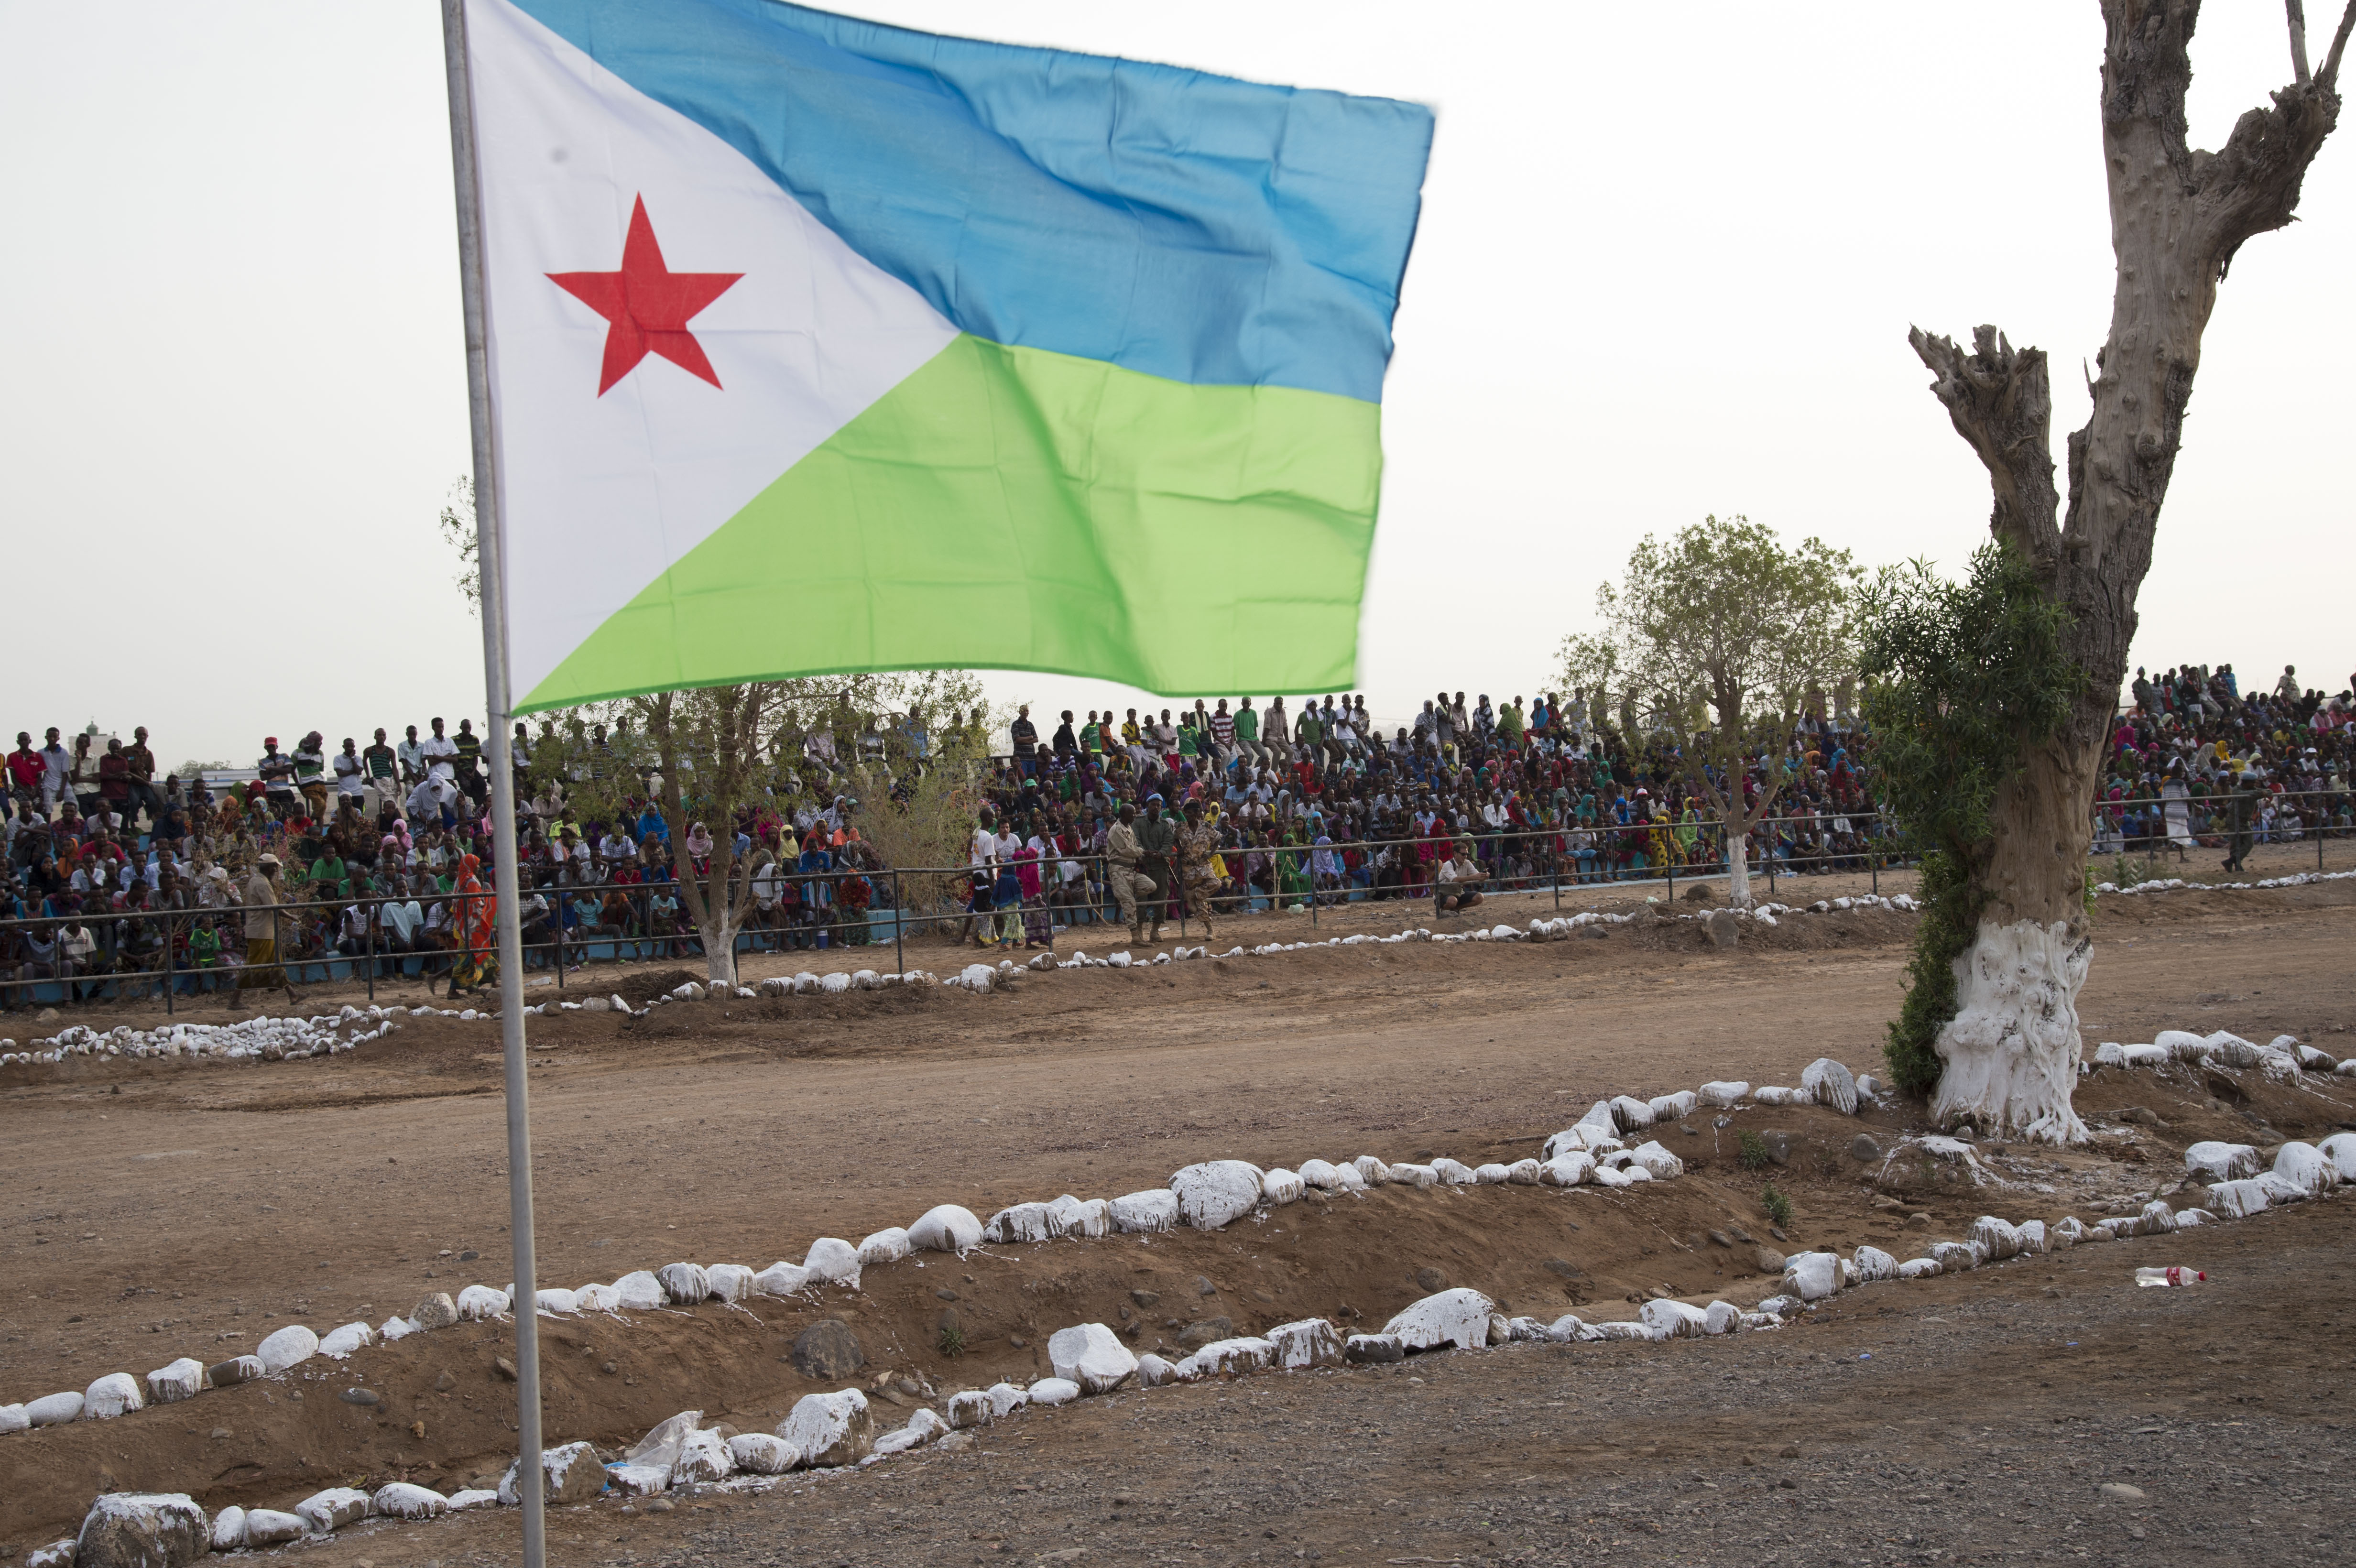 Crowds fill bleachers to watch the Djibouti Independence Day parade, June 27, 2016, at Djibouti. Thousands of Djiboutian citizens came to the  event to watch the demonstrations by the Djiboutian military and law enforcement. (U.S. Air Force photo by Staff Sgt. Eric Summers Jr.)